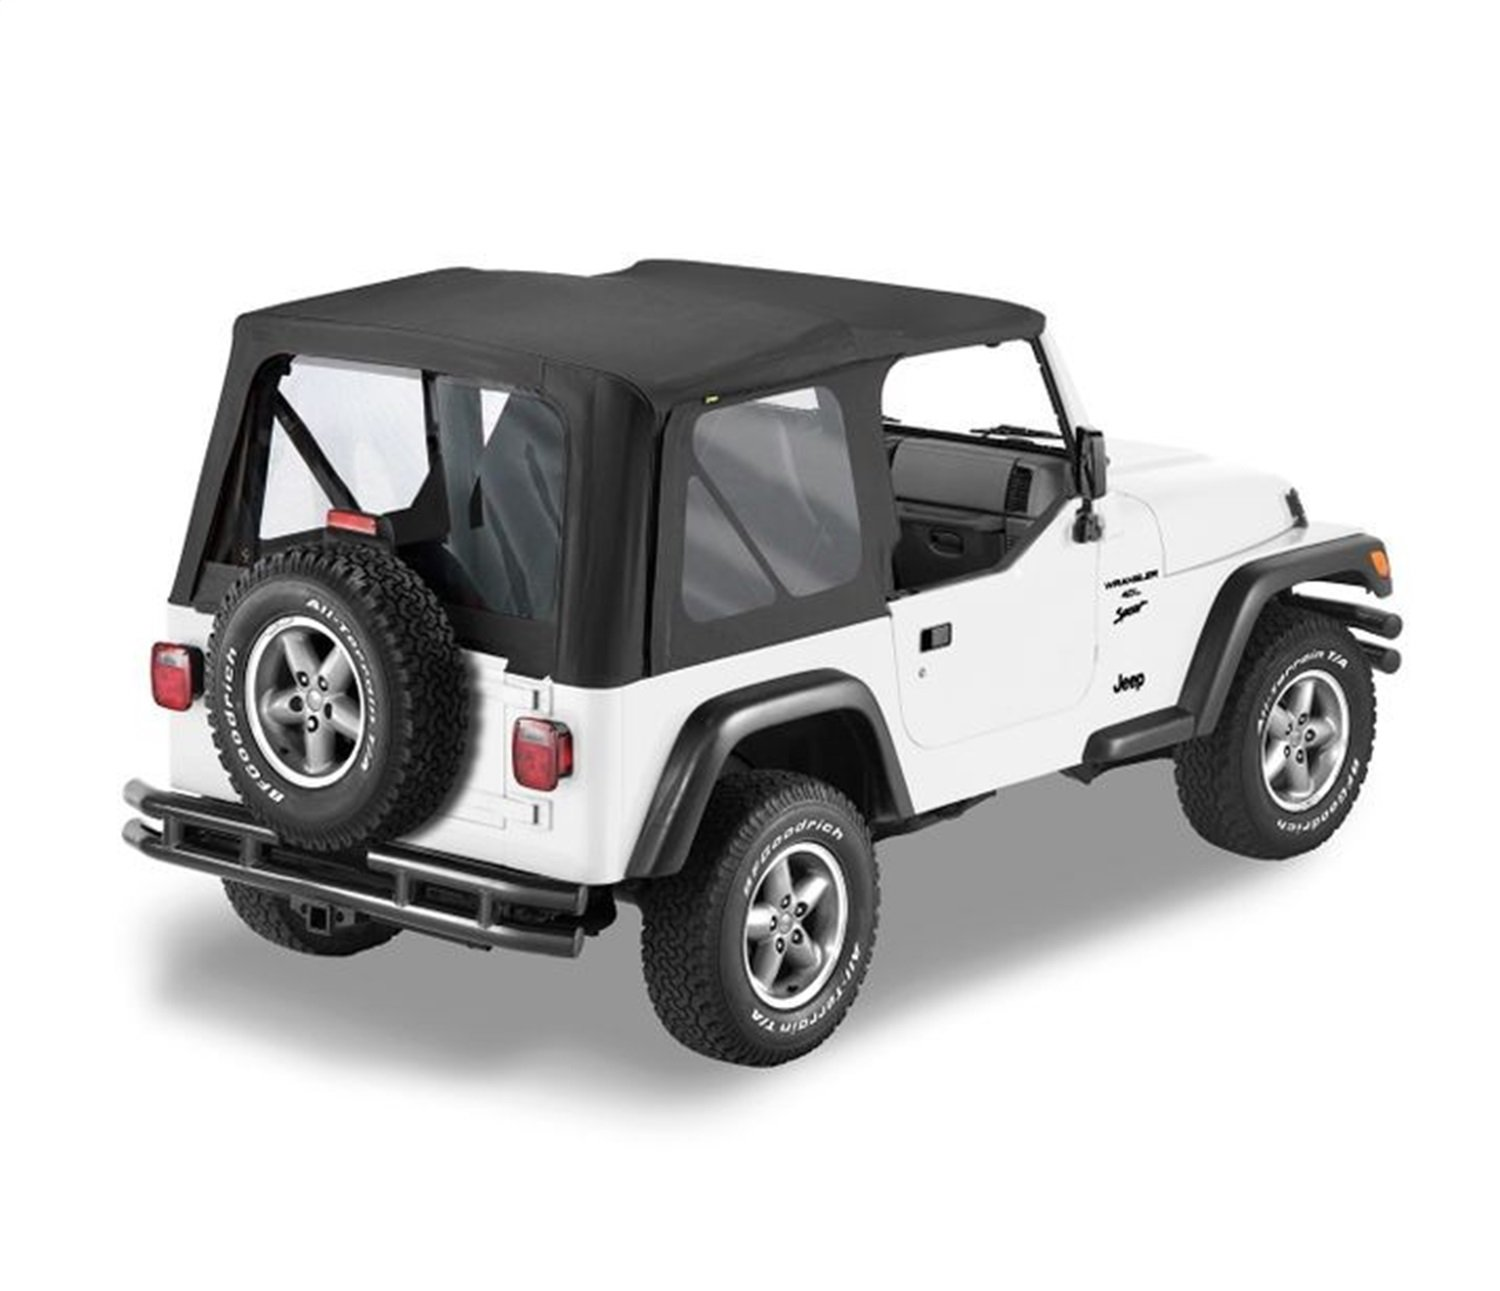 Bestop 7912201 Black Sailcloth Replace-A-Top for 1997-2002 Wrangler TJ